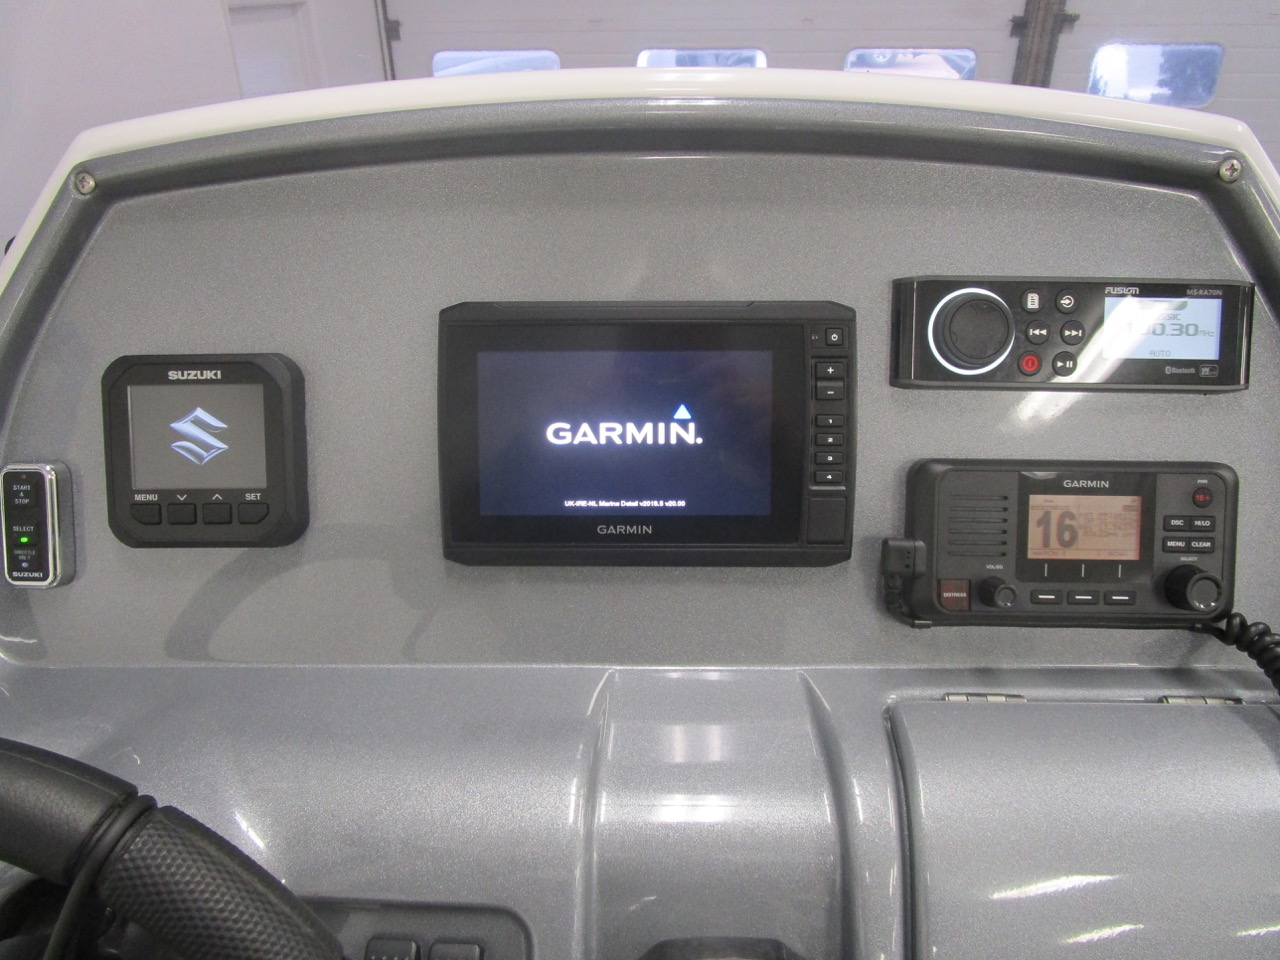 Grand RIB Golden Line G650 Electronics package